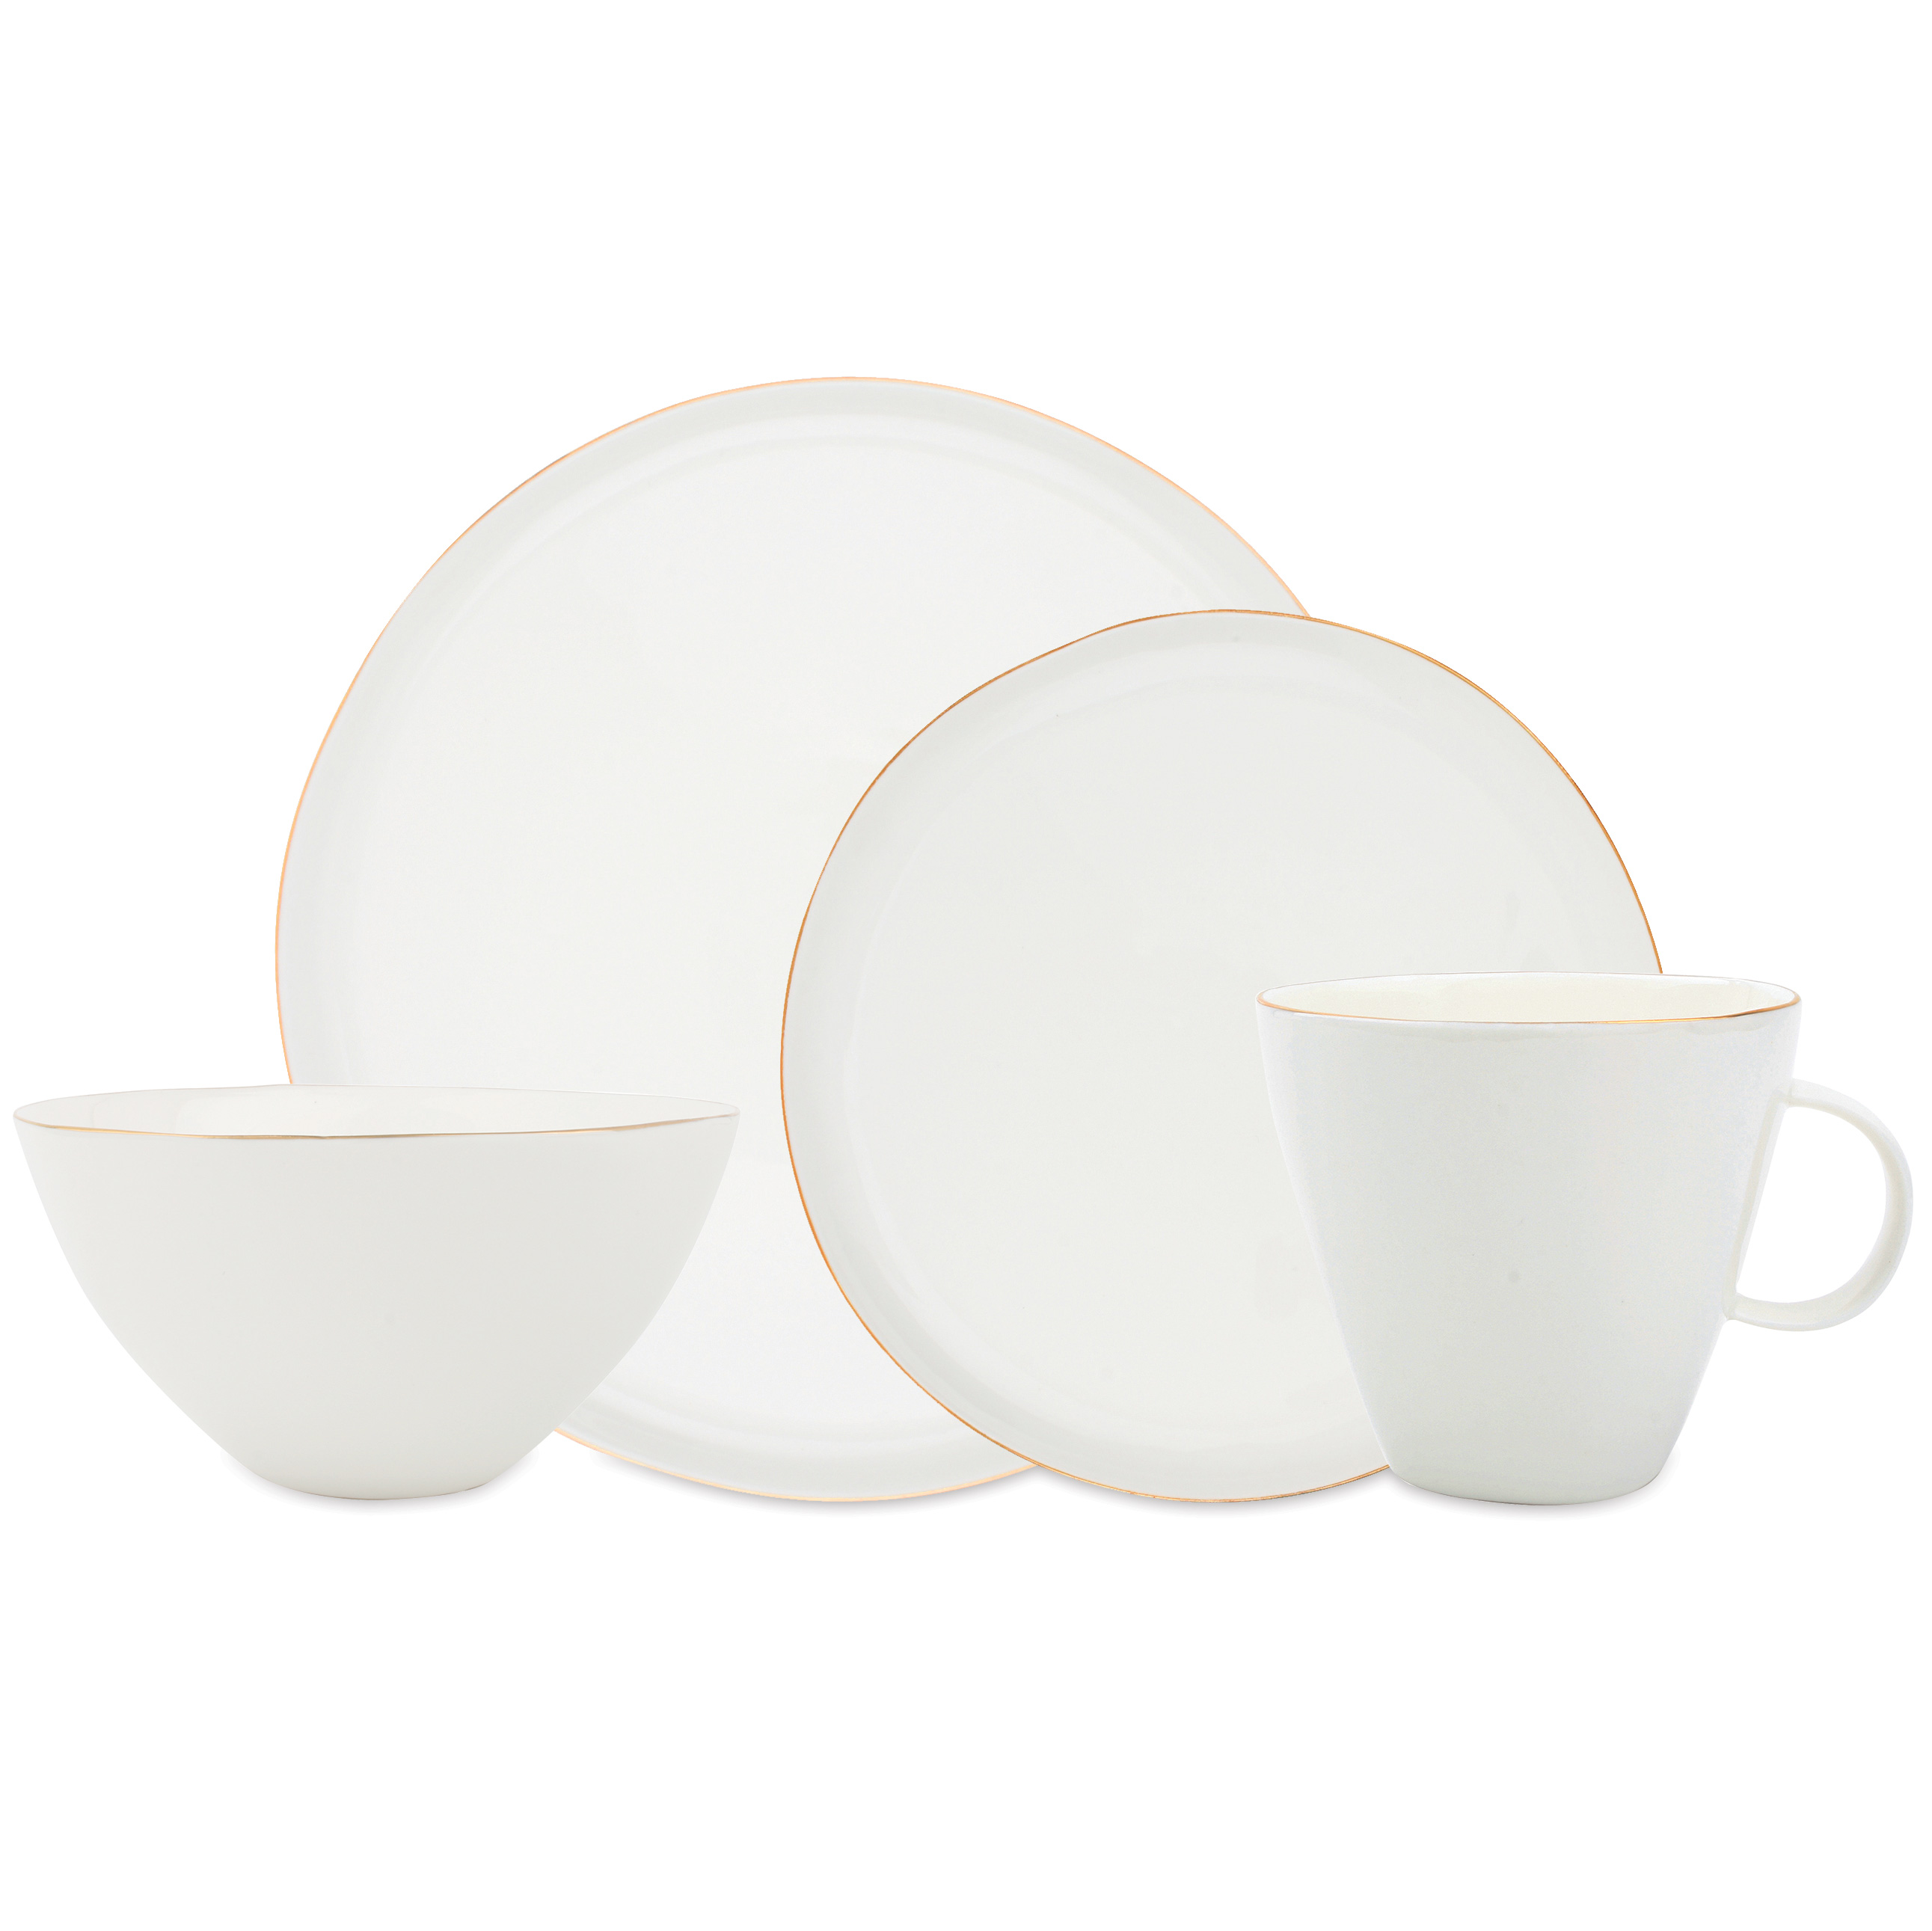 Abbesses Delicate Gold Rim White Dinner Set - 4 Piece  sc 1 st  Kathy Kuo Home & Dinnerware Collections | Kathy Kuo Home